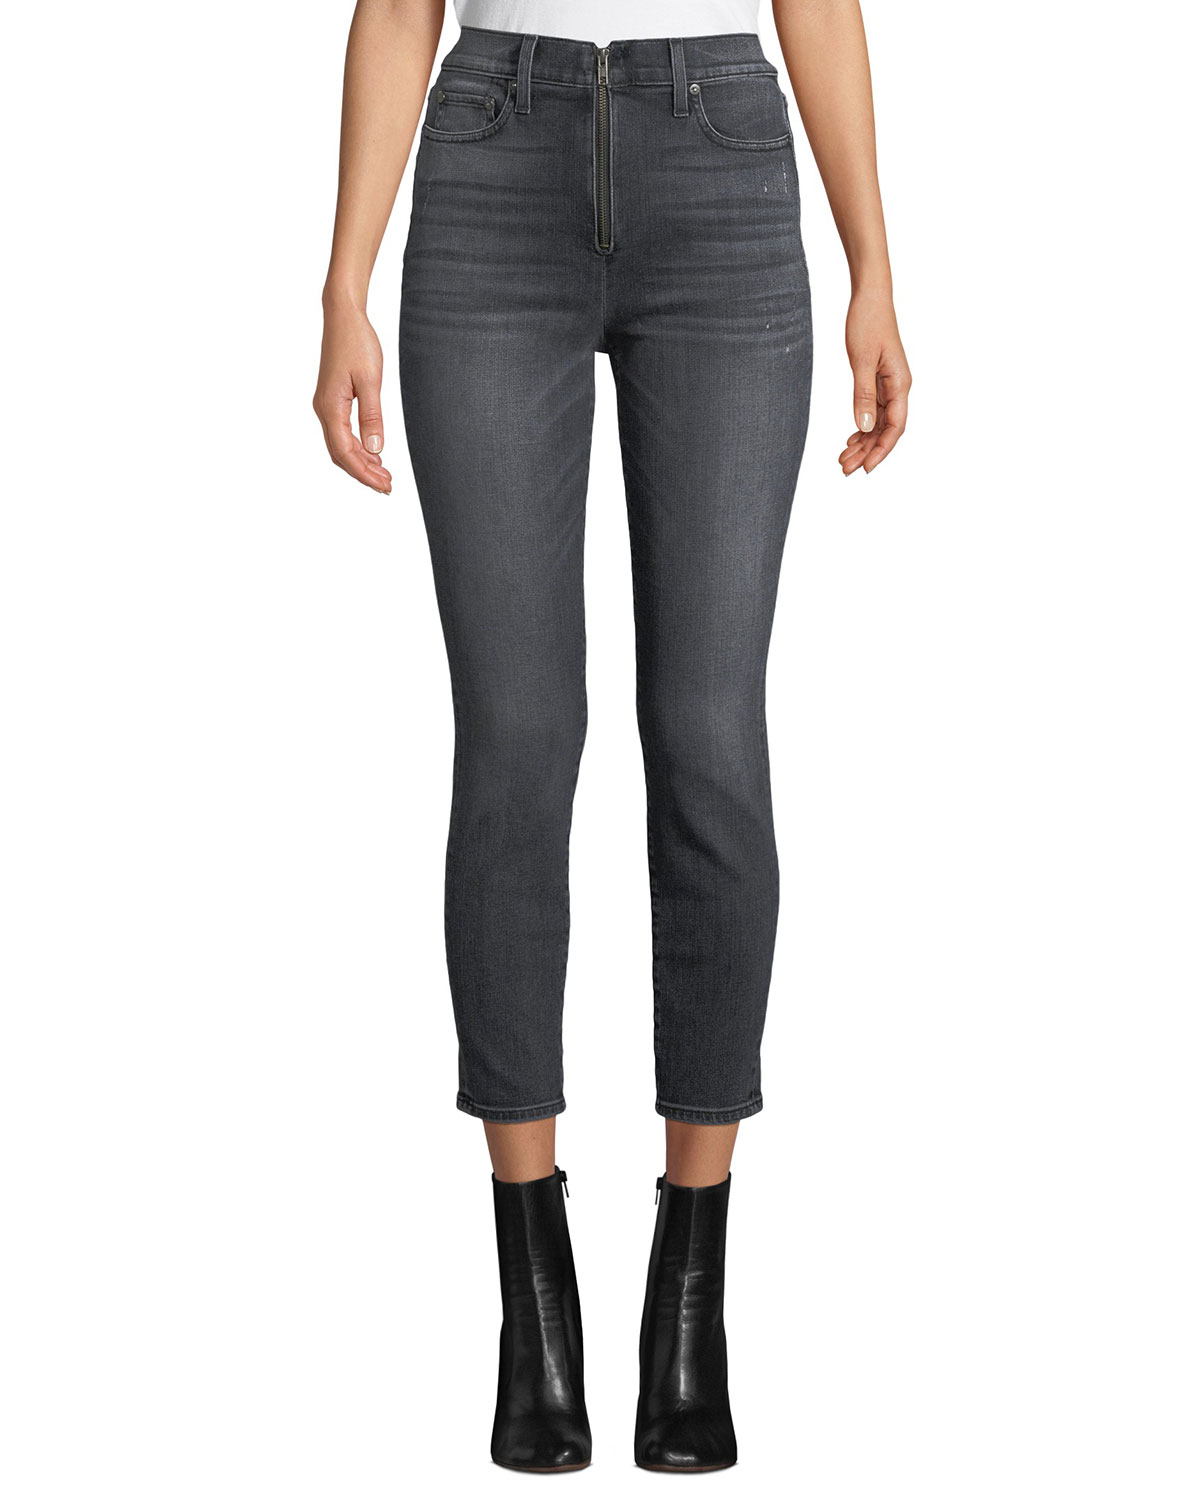 AO.LA BY ALICE+OLIVIA Good High-Rise Ankle Skinny Jeans With Exposed Zip Fly in Black Magic